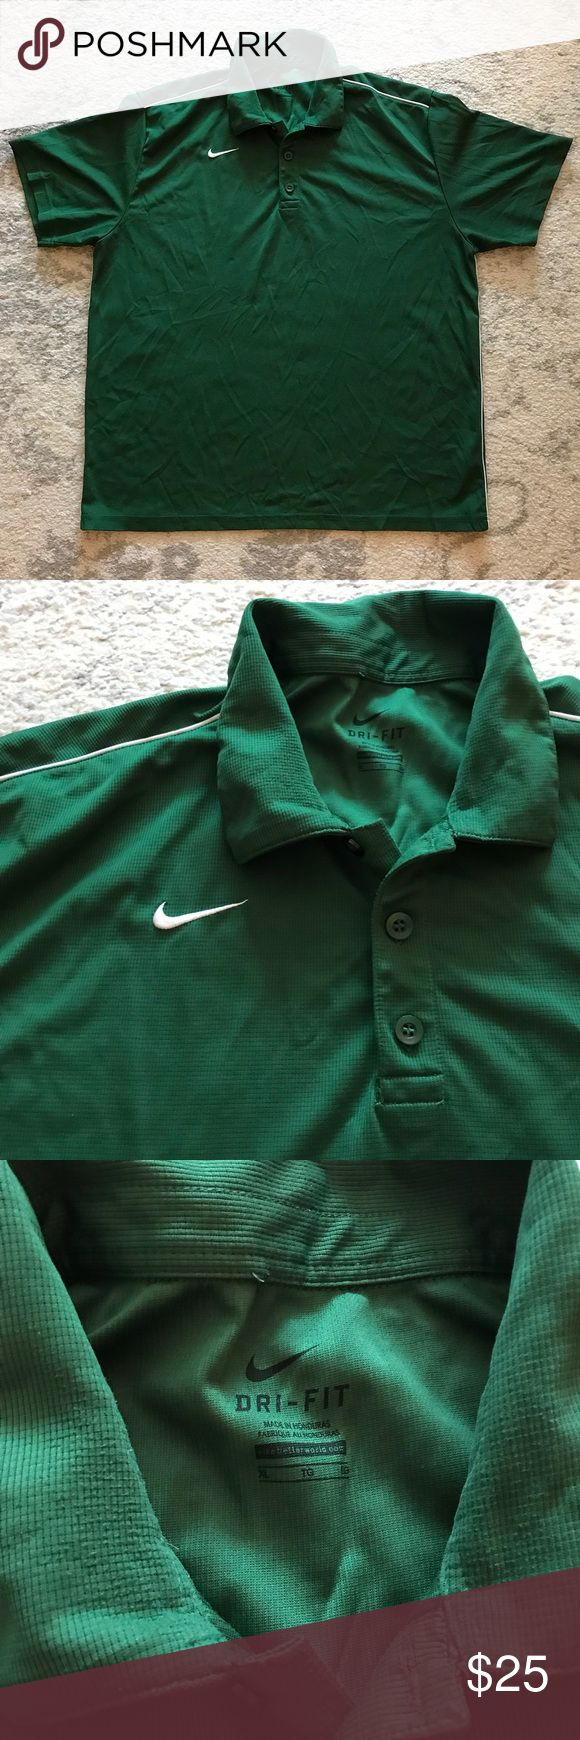 Green Men's Nike Dri-Fit golf polo shirt Green Men's Dri-Fit golf collared polo shirt from Nike. The shirt has a white piping stripe running down each side, as well as a white piping stripe running across each shoulder. The Nike swoosh logo is stitched onto the front right chest of the shirt in white. The shirt is 100% polyester. Three buttons run down from the top collar. Excellent Dri-Fit wicking material. In great condition! Perfect for playing golf or any other athletic activity, or even…